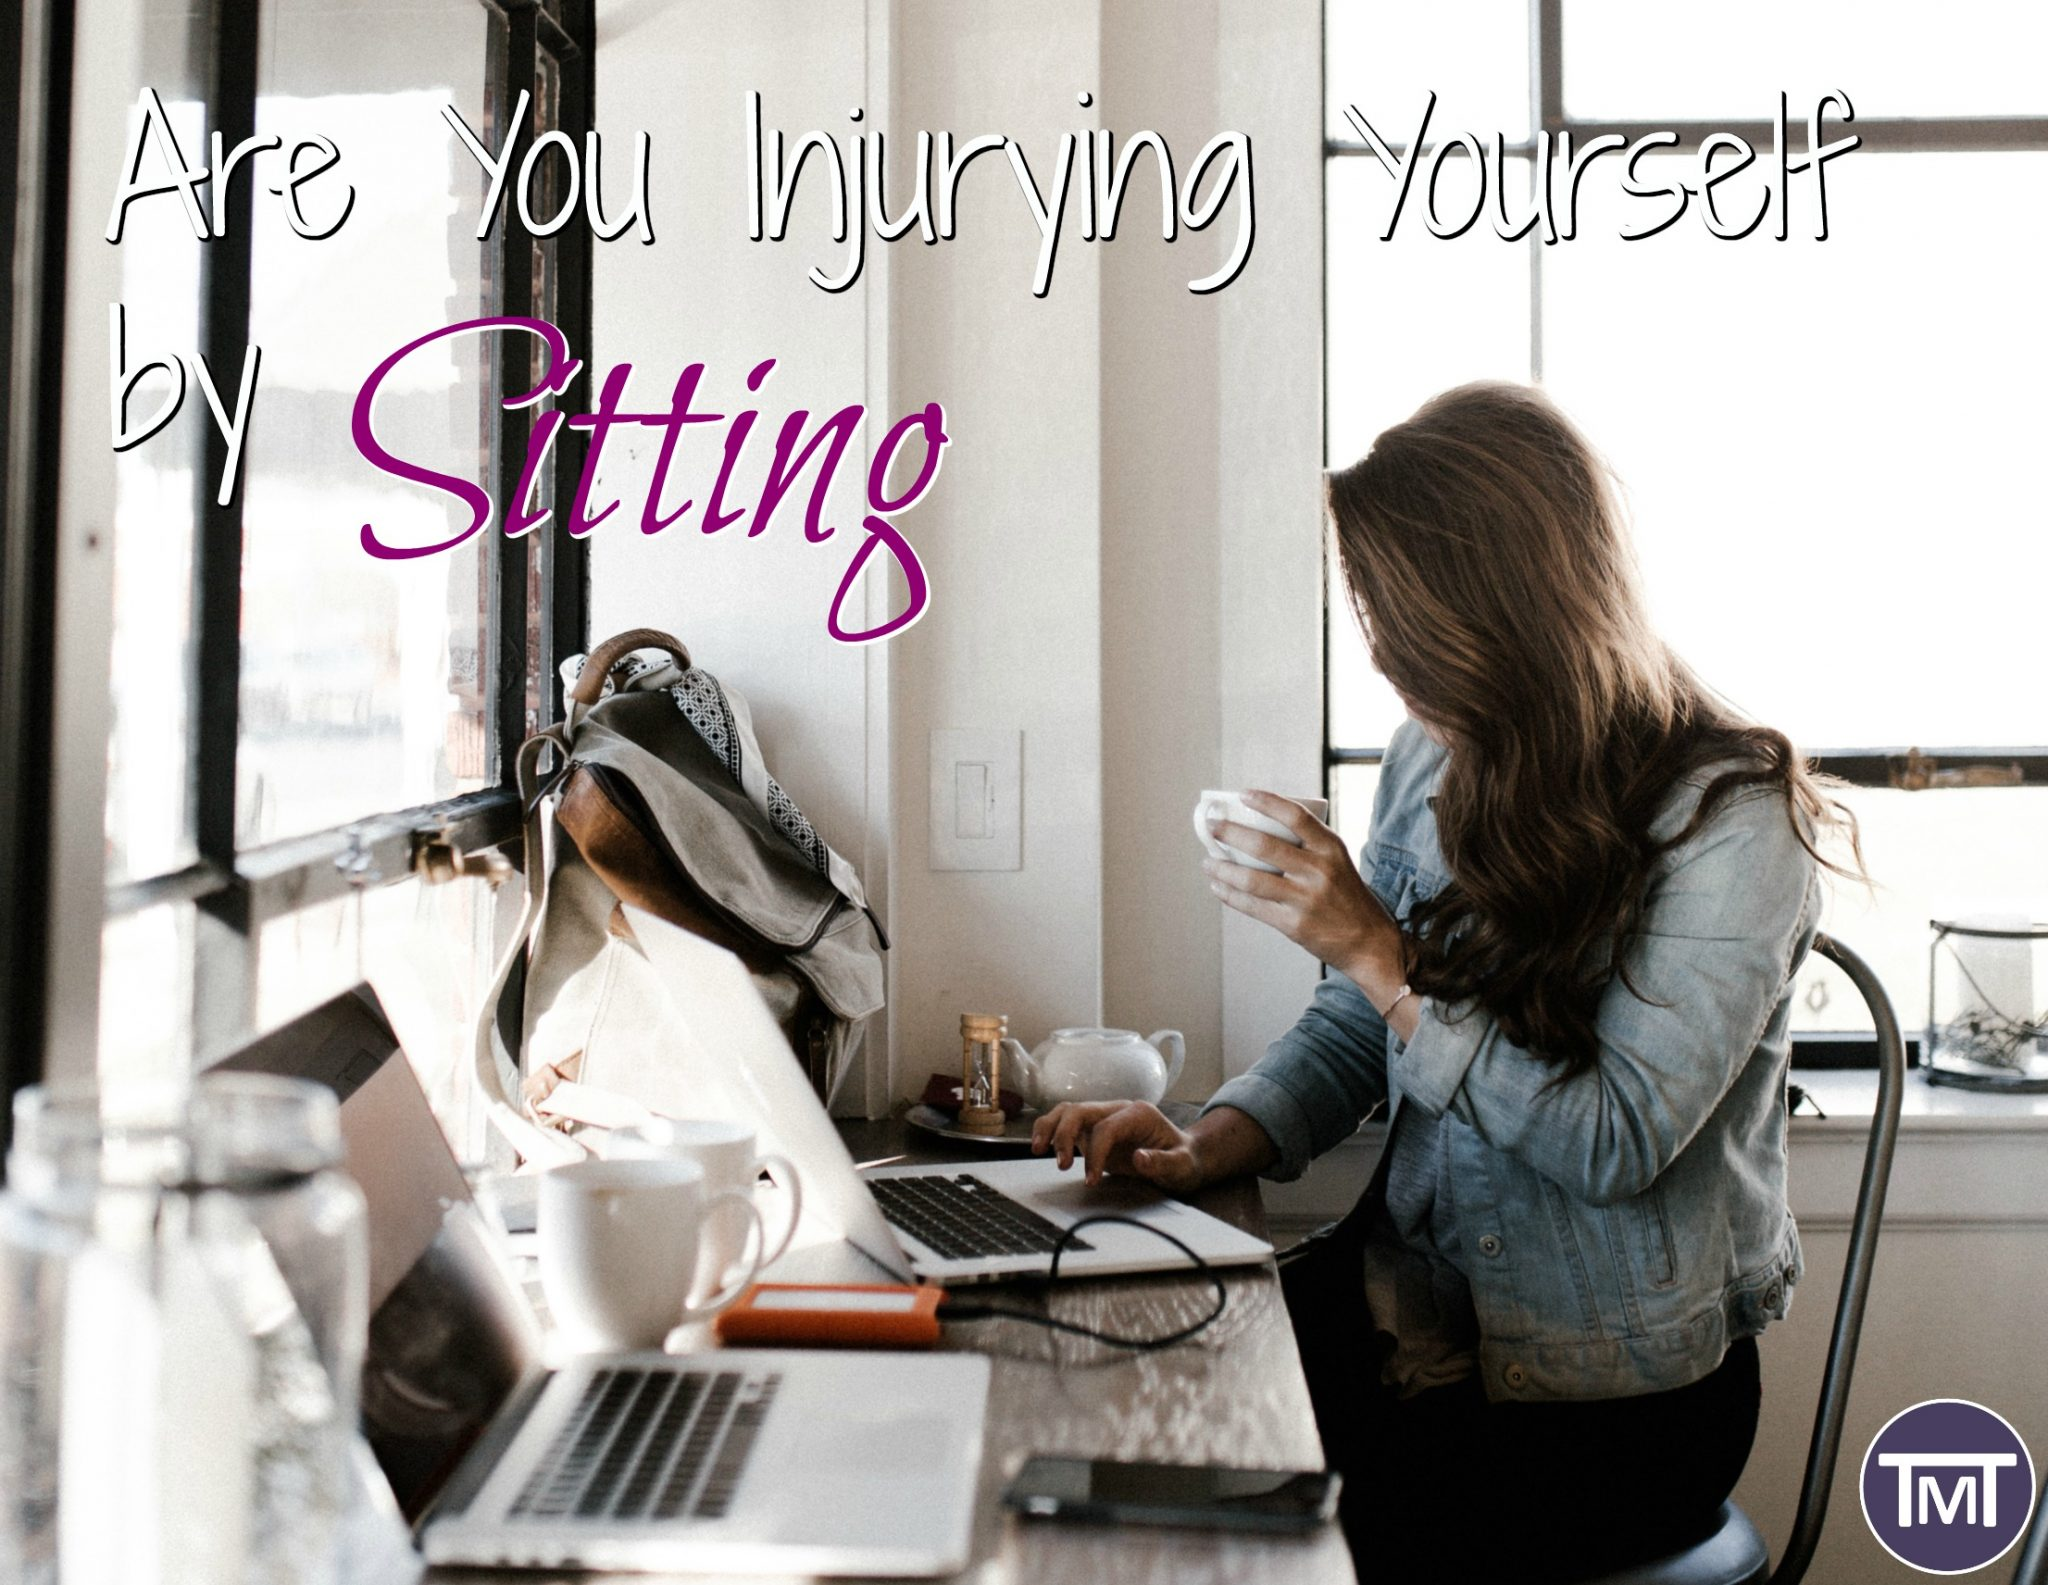 are you injuring yourself by sitting feature